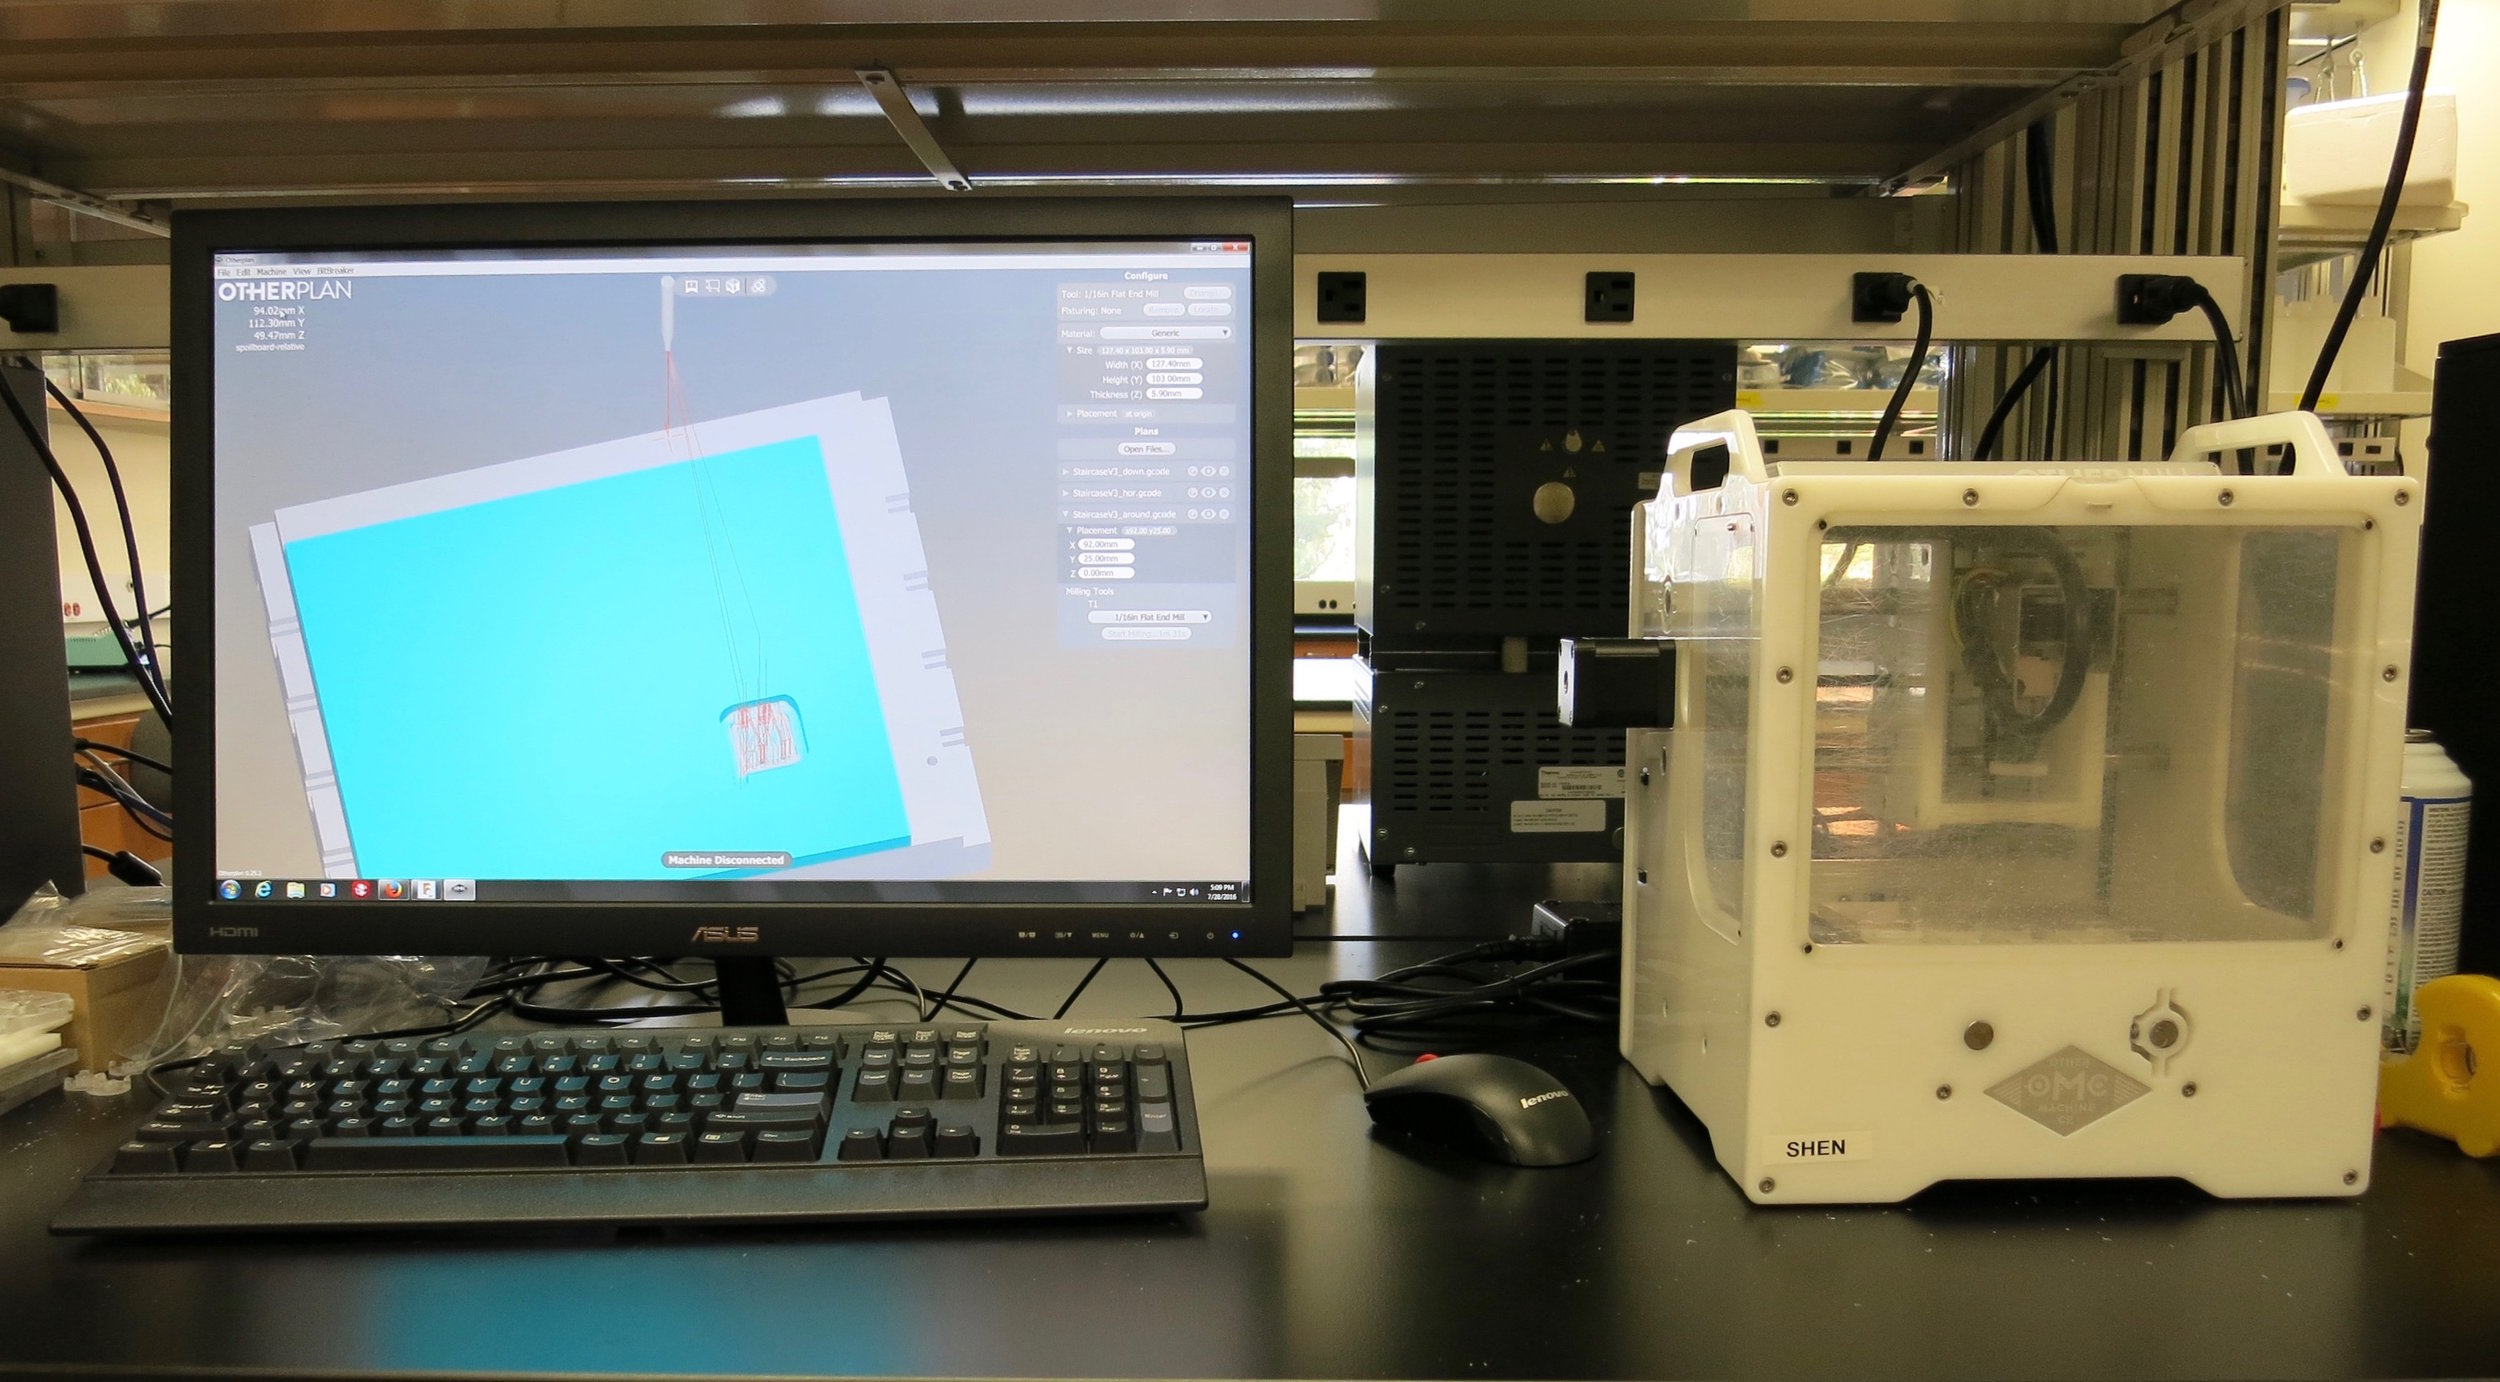 Note: The Bantam Tools Desktop PCB Milling Machine and the Bantam Tools Desktop Milling Machine Software were previously called the Othermill and Otherplan.